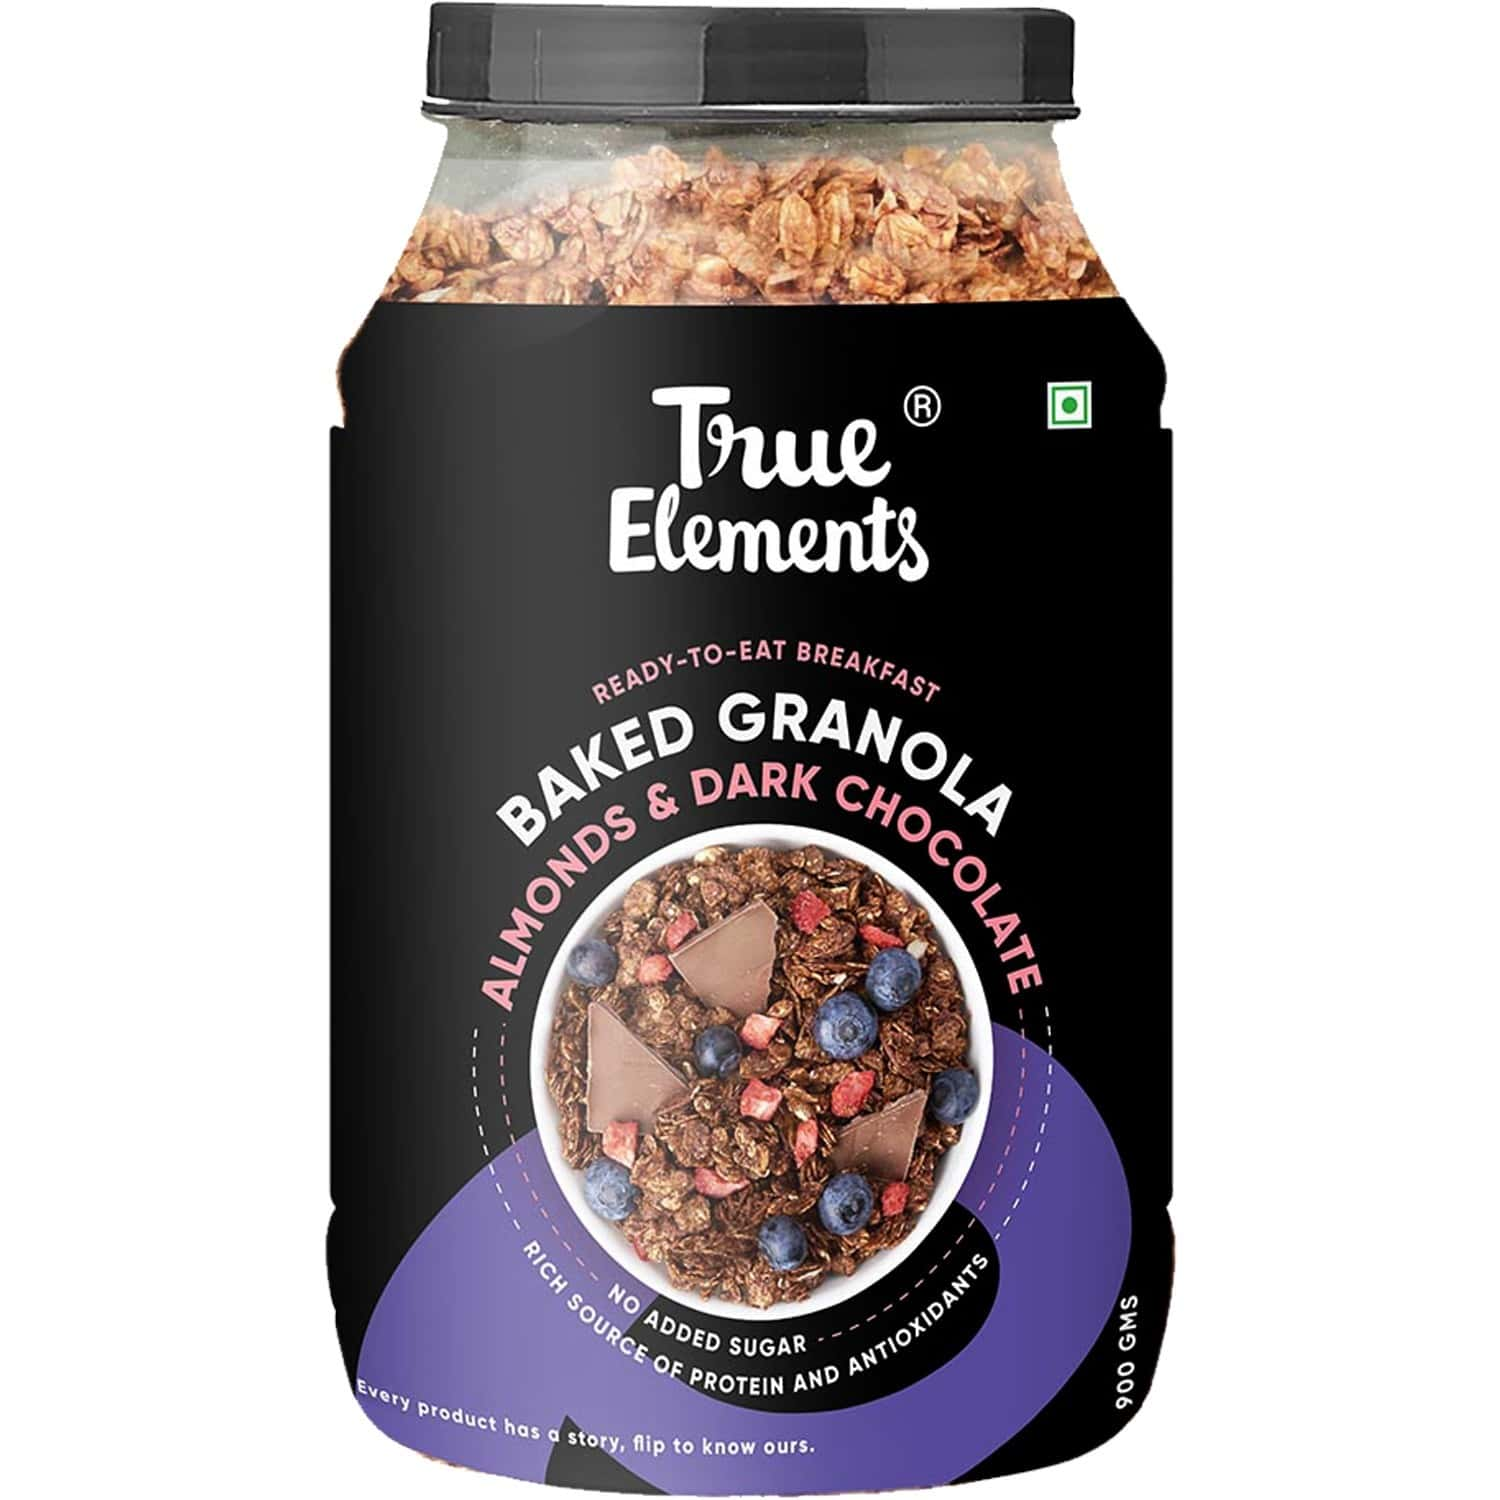 True Elements Baked Granola: Almonds And Dark Chocolate - 900 Gm